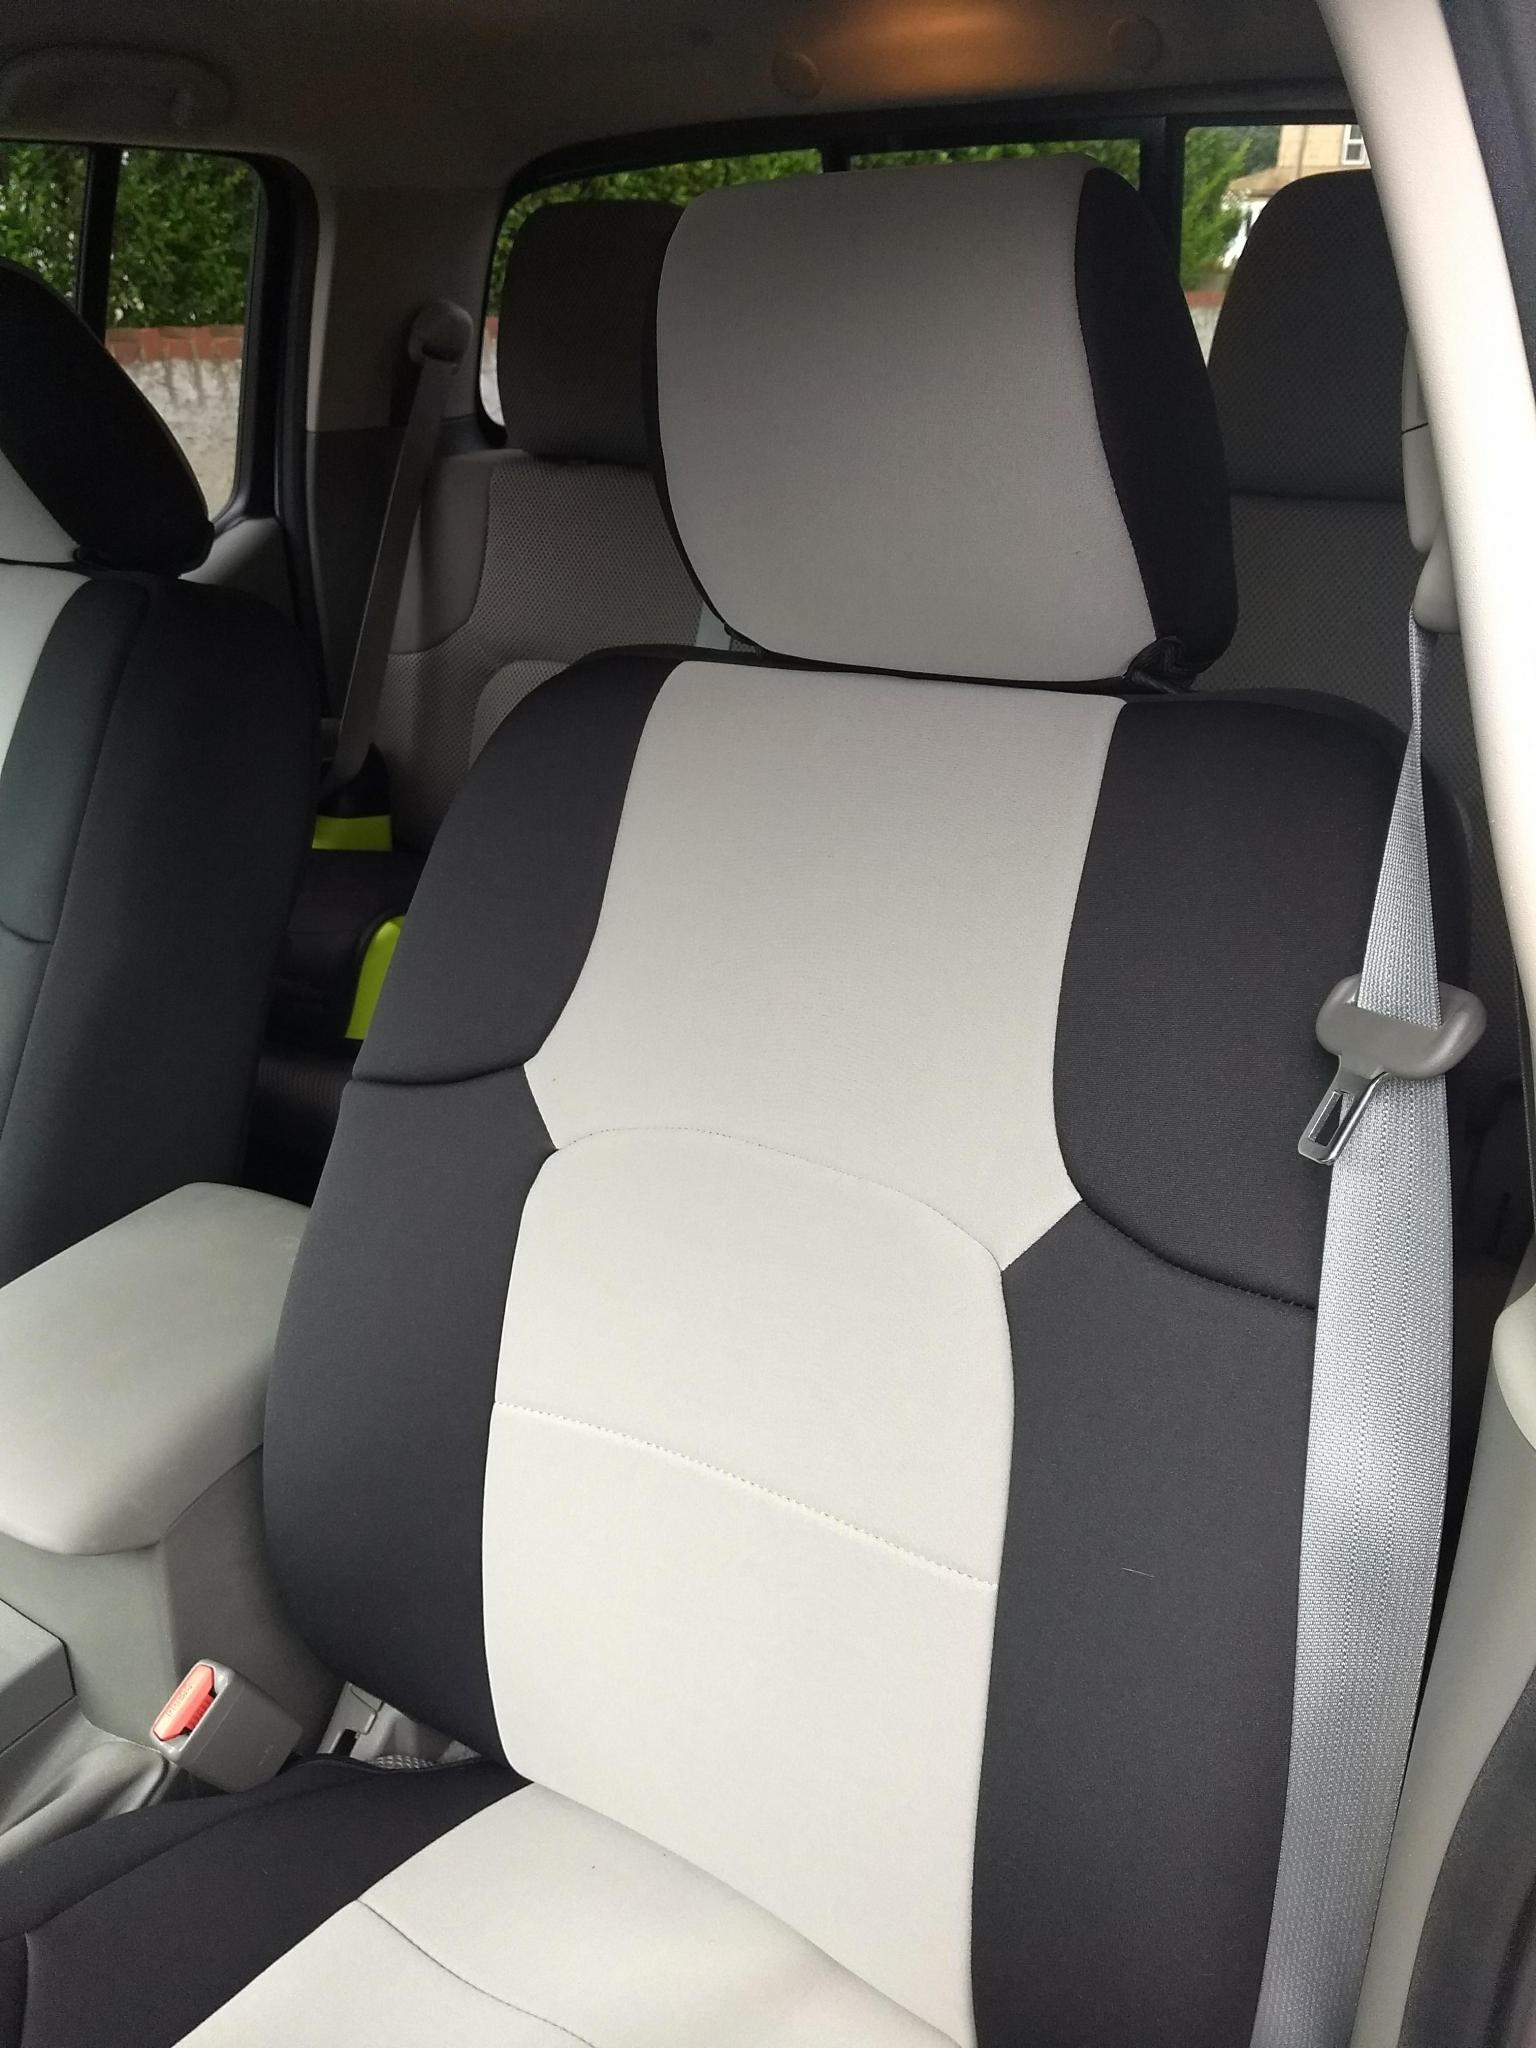 no more cheese cloth seats coverkings ftw nissan frontier forum. Black Bedroom Furniture Sets. Home Design Ideas